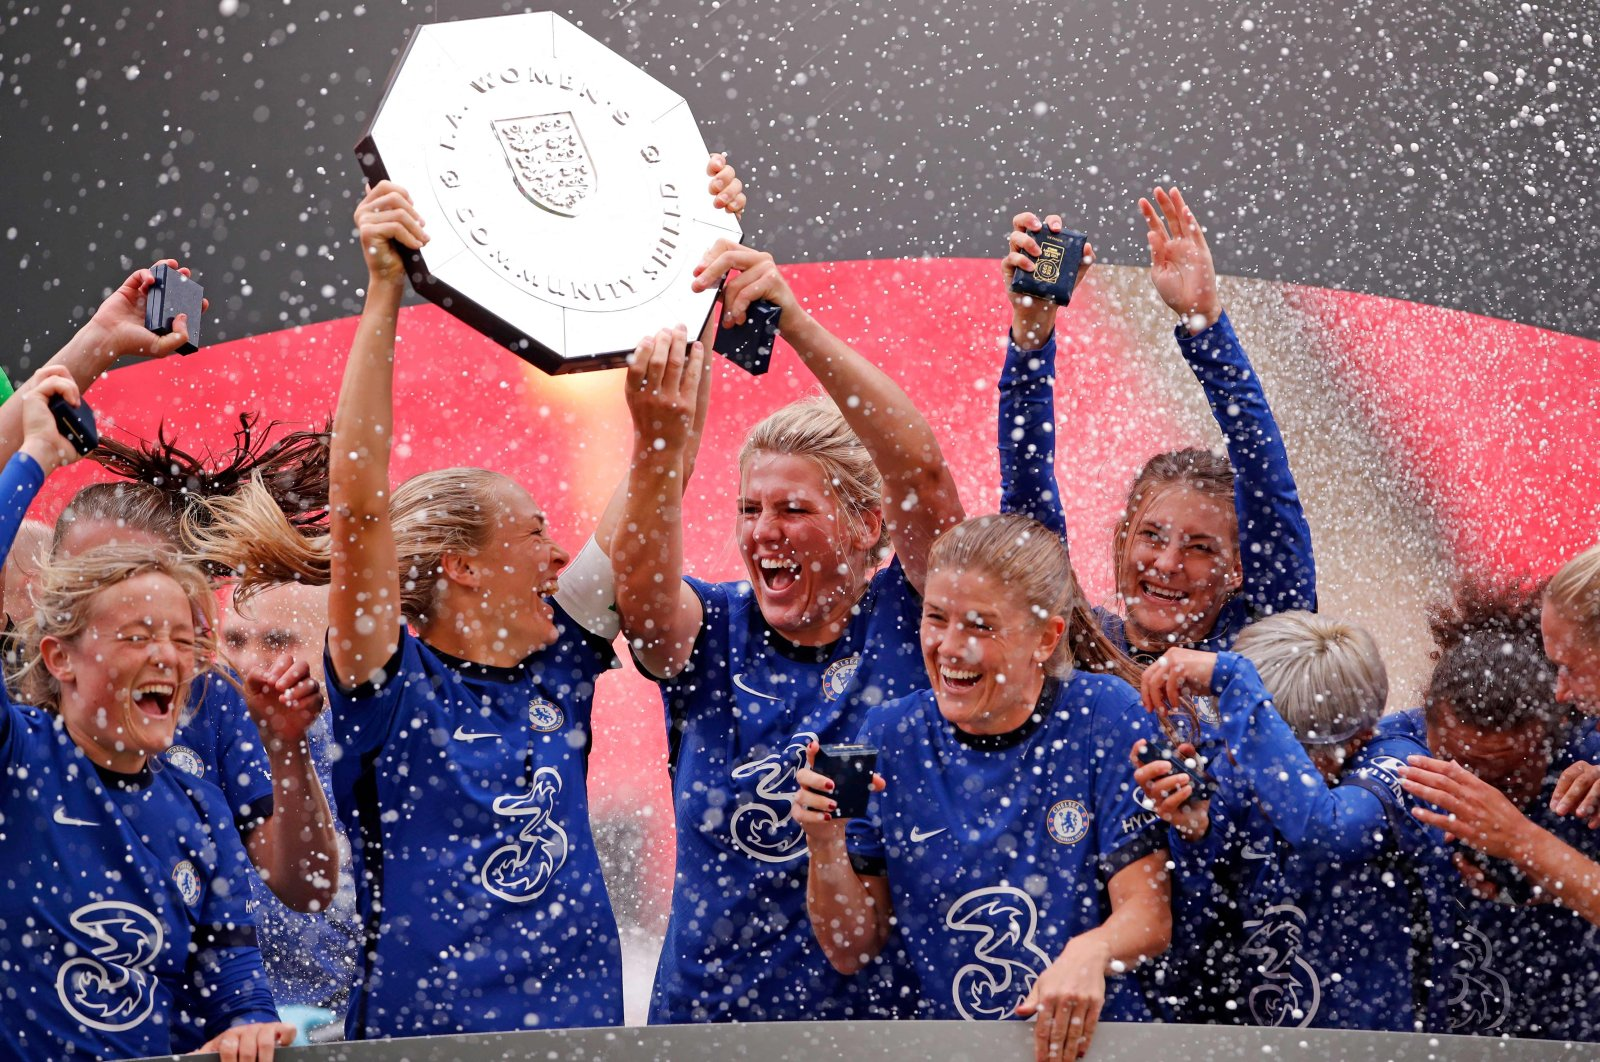 Chelsea's captain Magdalena Eriksson and English defender Millie Bright lift the English FA Women's Community Shield trophy at Wembley Stadium, London, Britain, Aug. 29, 2020. (AFP Photo)